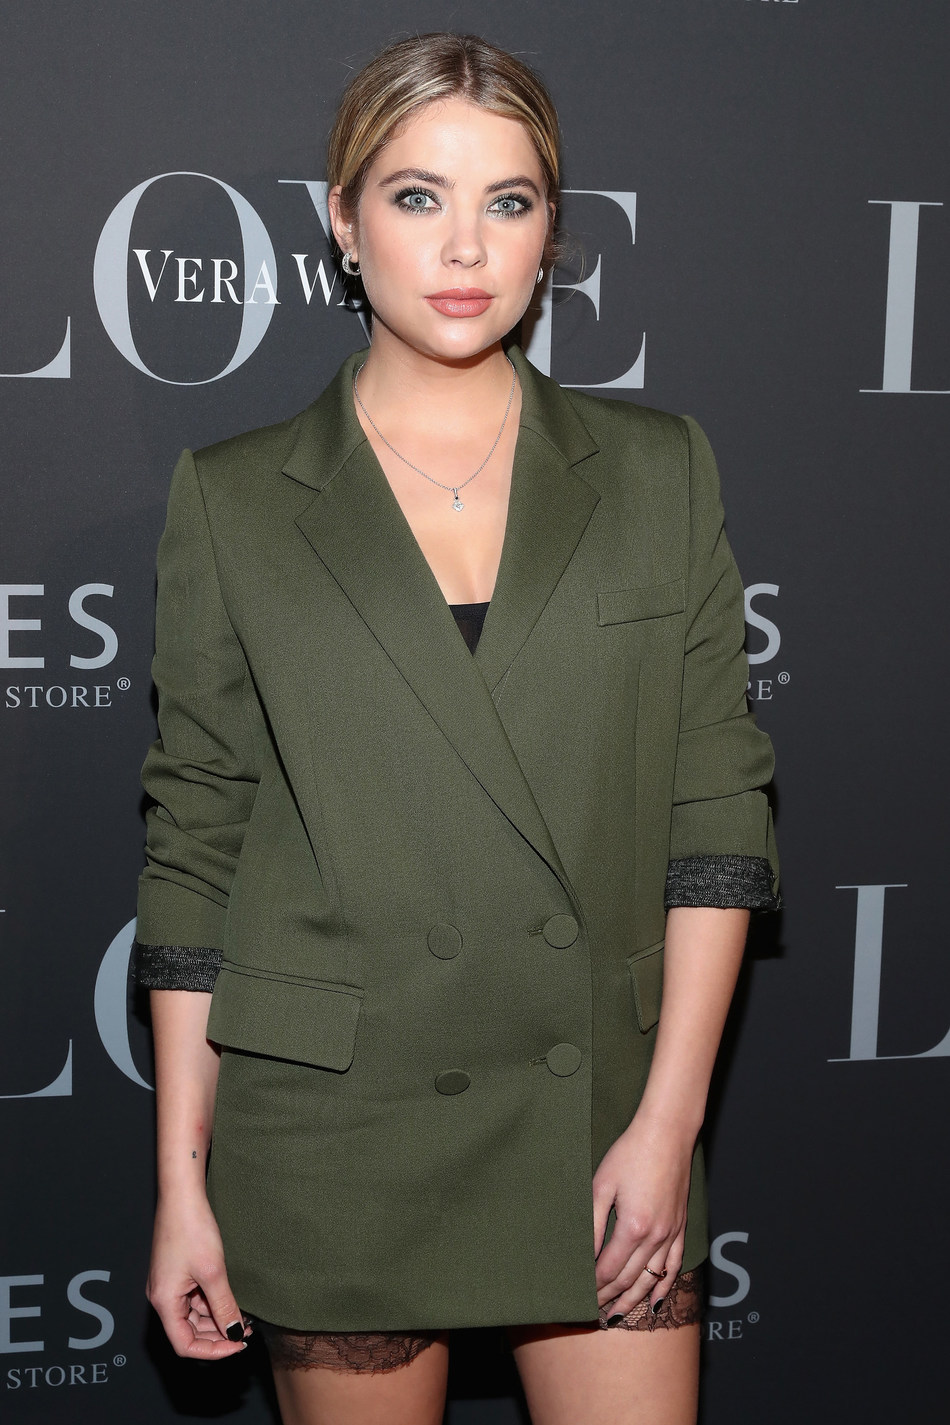 Ashley Benson chose mini Vera Wang LOVE chevron hoop earrings in white gold and a diamond and white gold princess cut drop pendant from the collection for the Vera Wang LOVE holiday event at Betony in New York City on December 7, 2016.